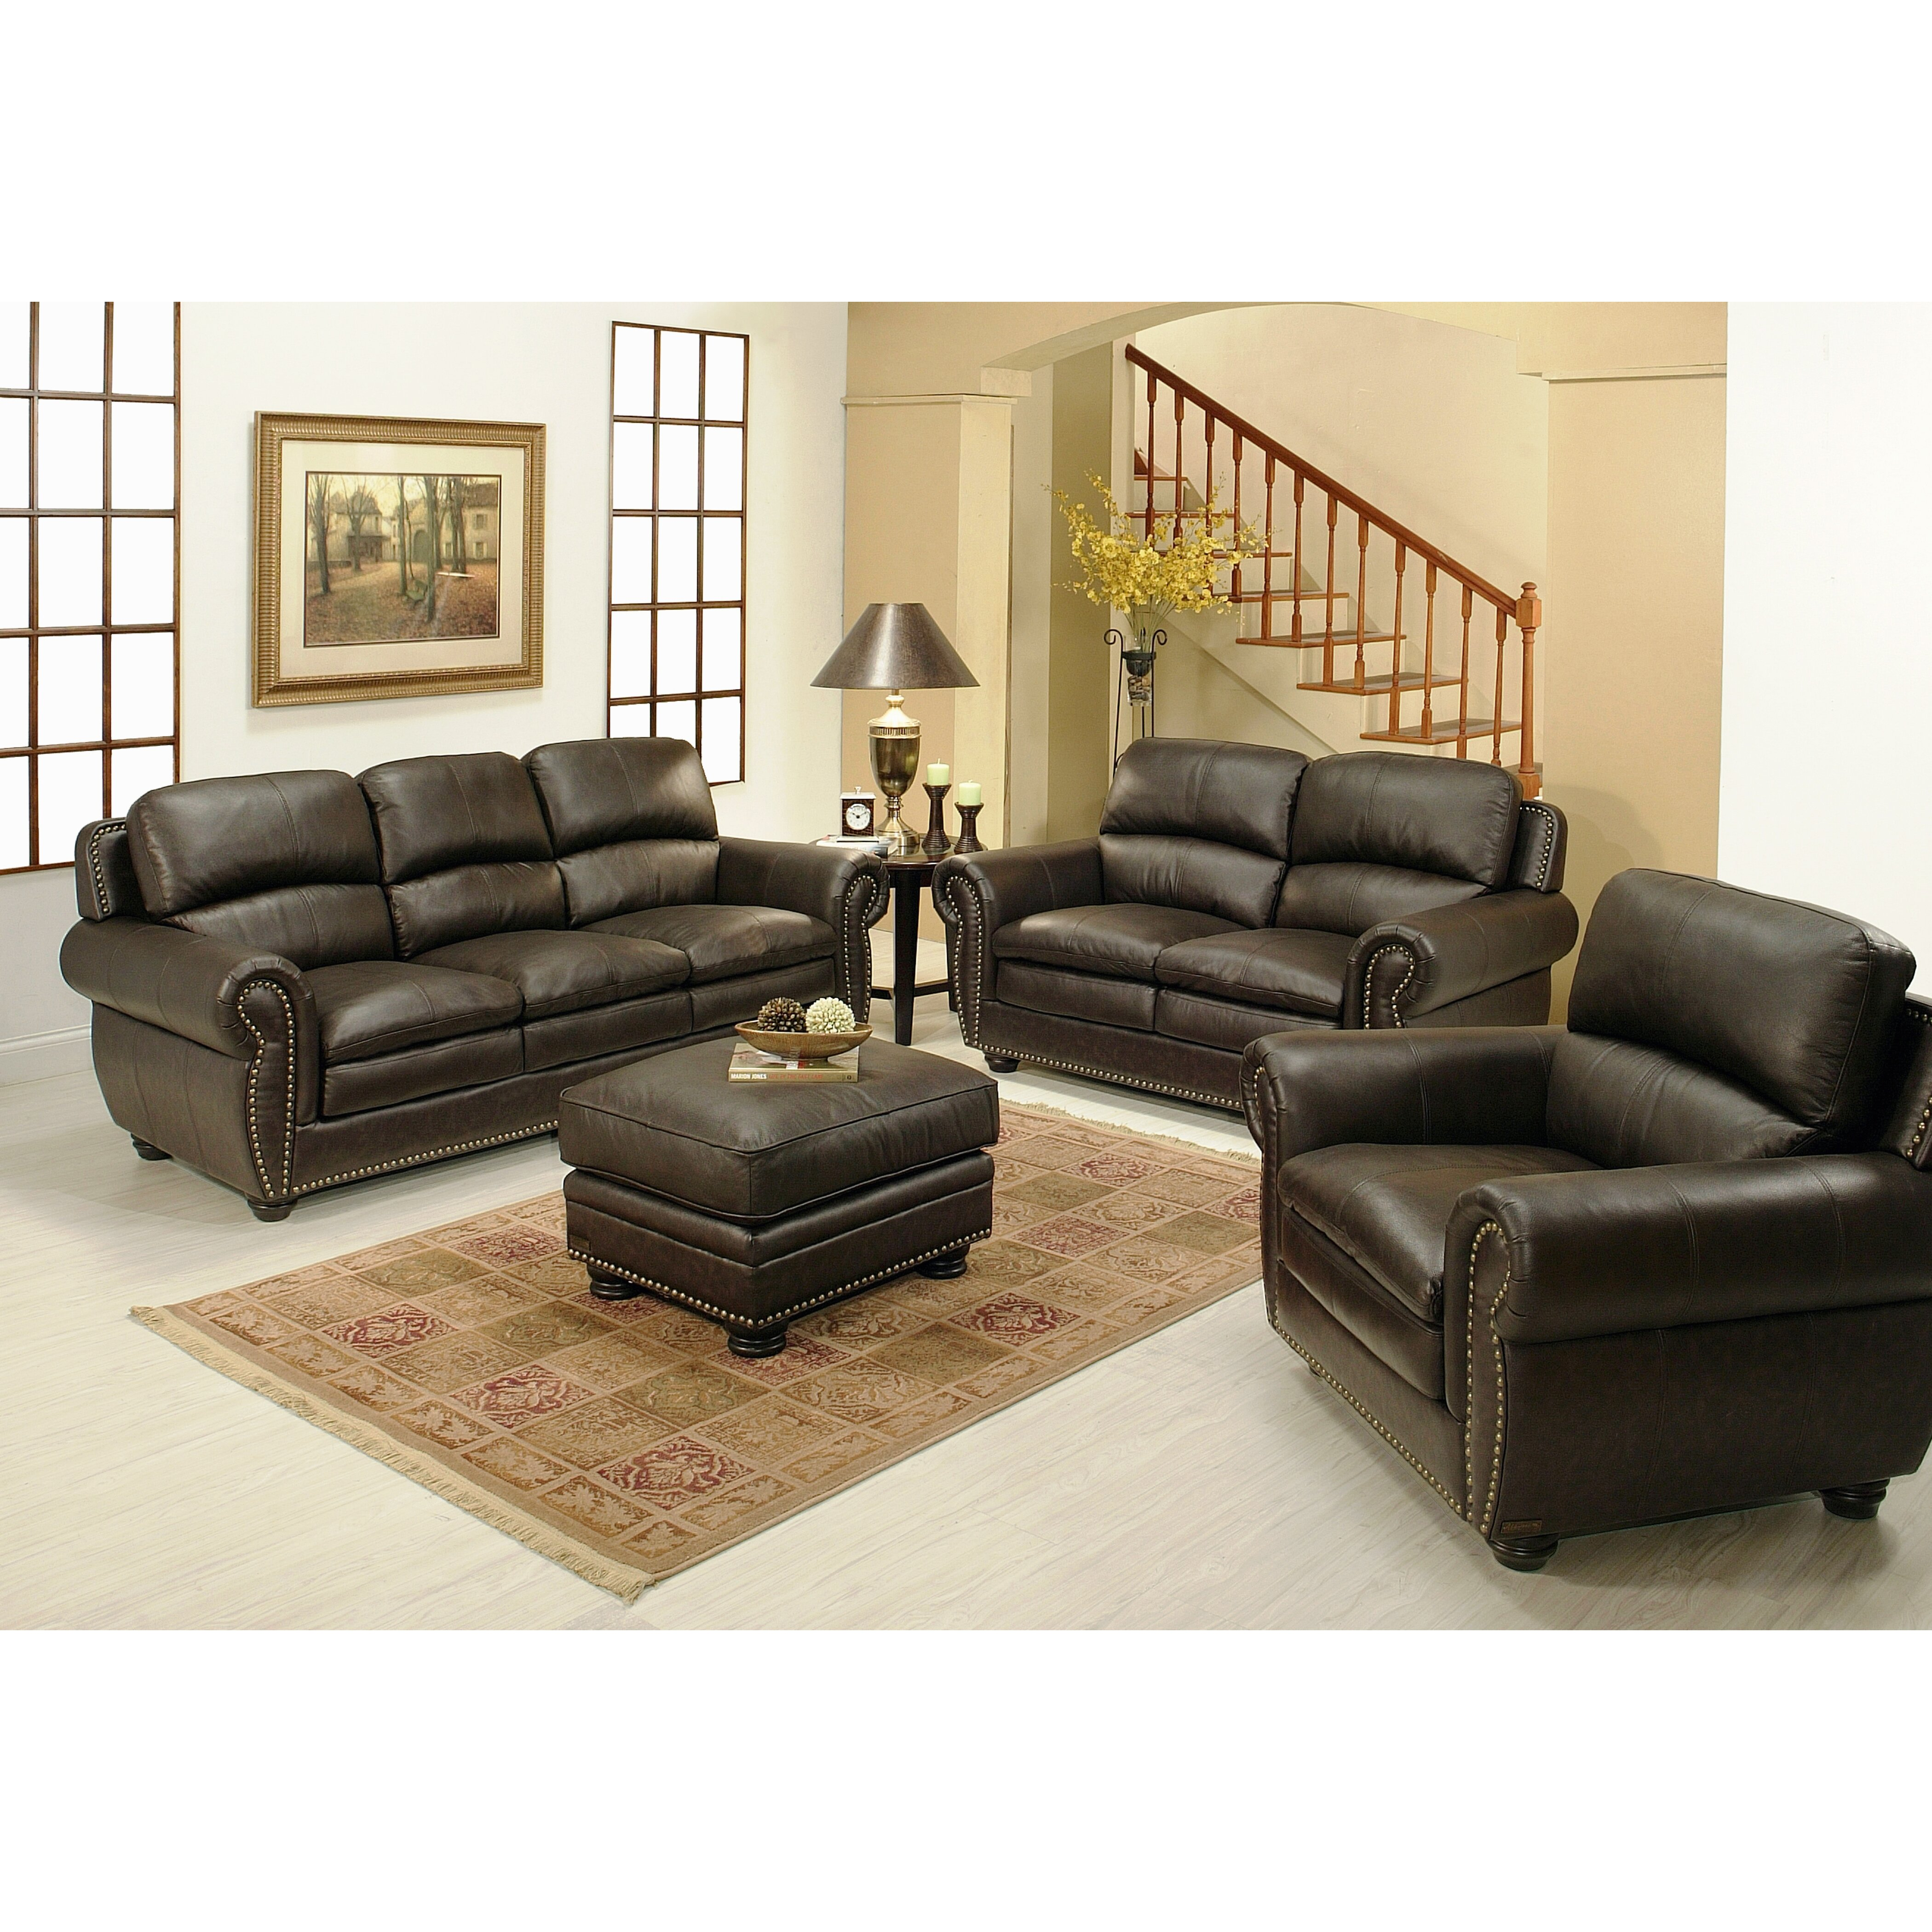 Abbyson Living Ridgecrest 4 Piece Top Grain Leather Living Room Collection Wayfair